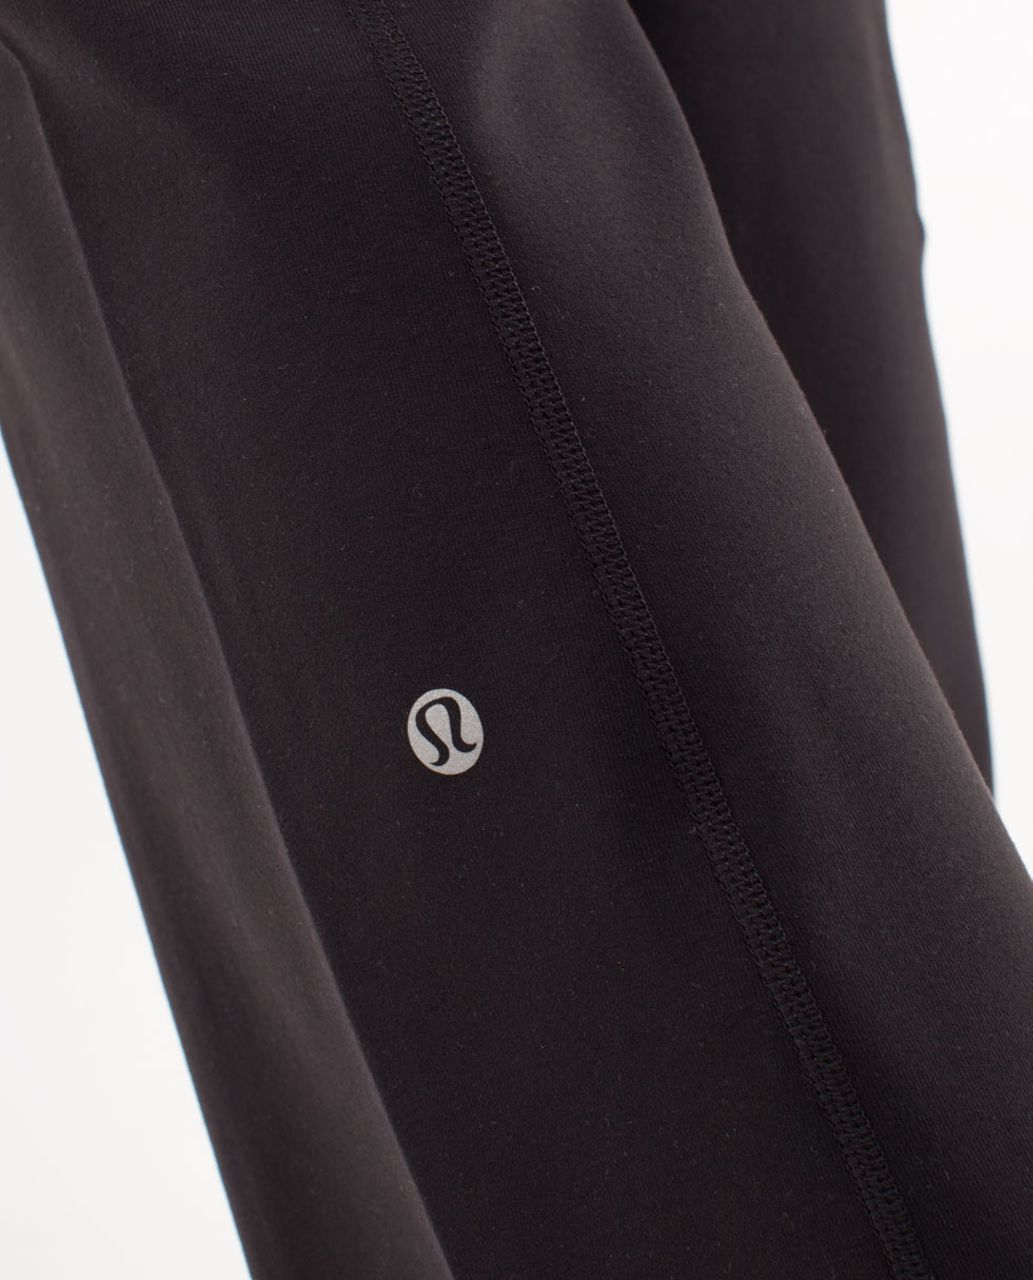 Lululemon Groove Pant (Regular) - Black /  Heathered Fossil /  Quilting Spring 16